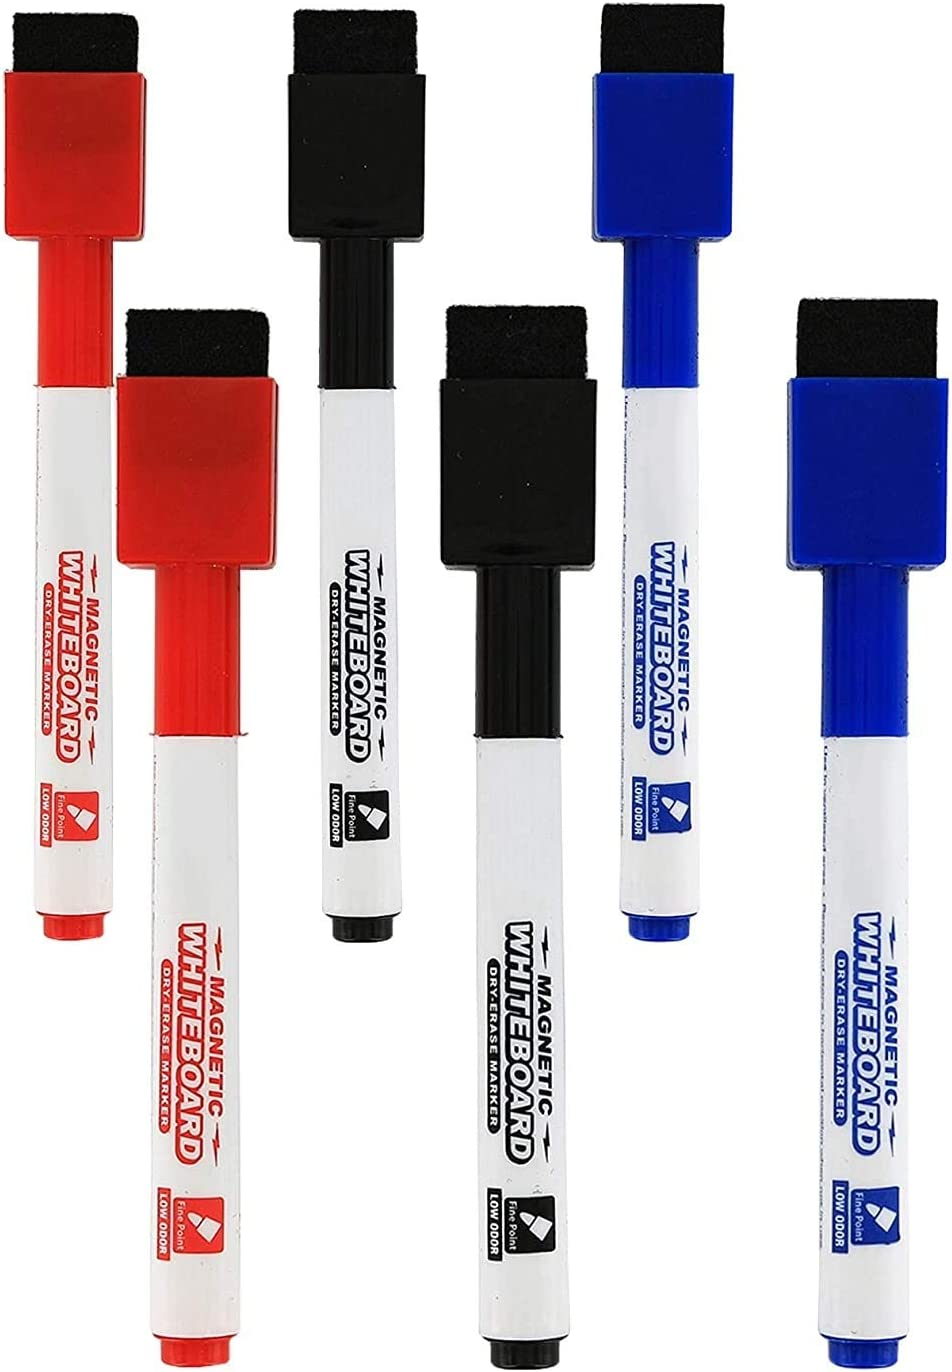 Magnetic Max 86% OFF Dry El Paso Mall Erase Markers Whiteboard Point Assorted Fine Colors